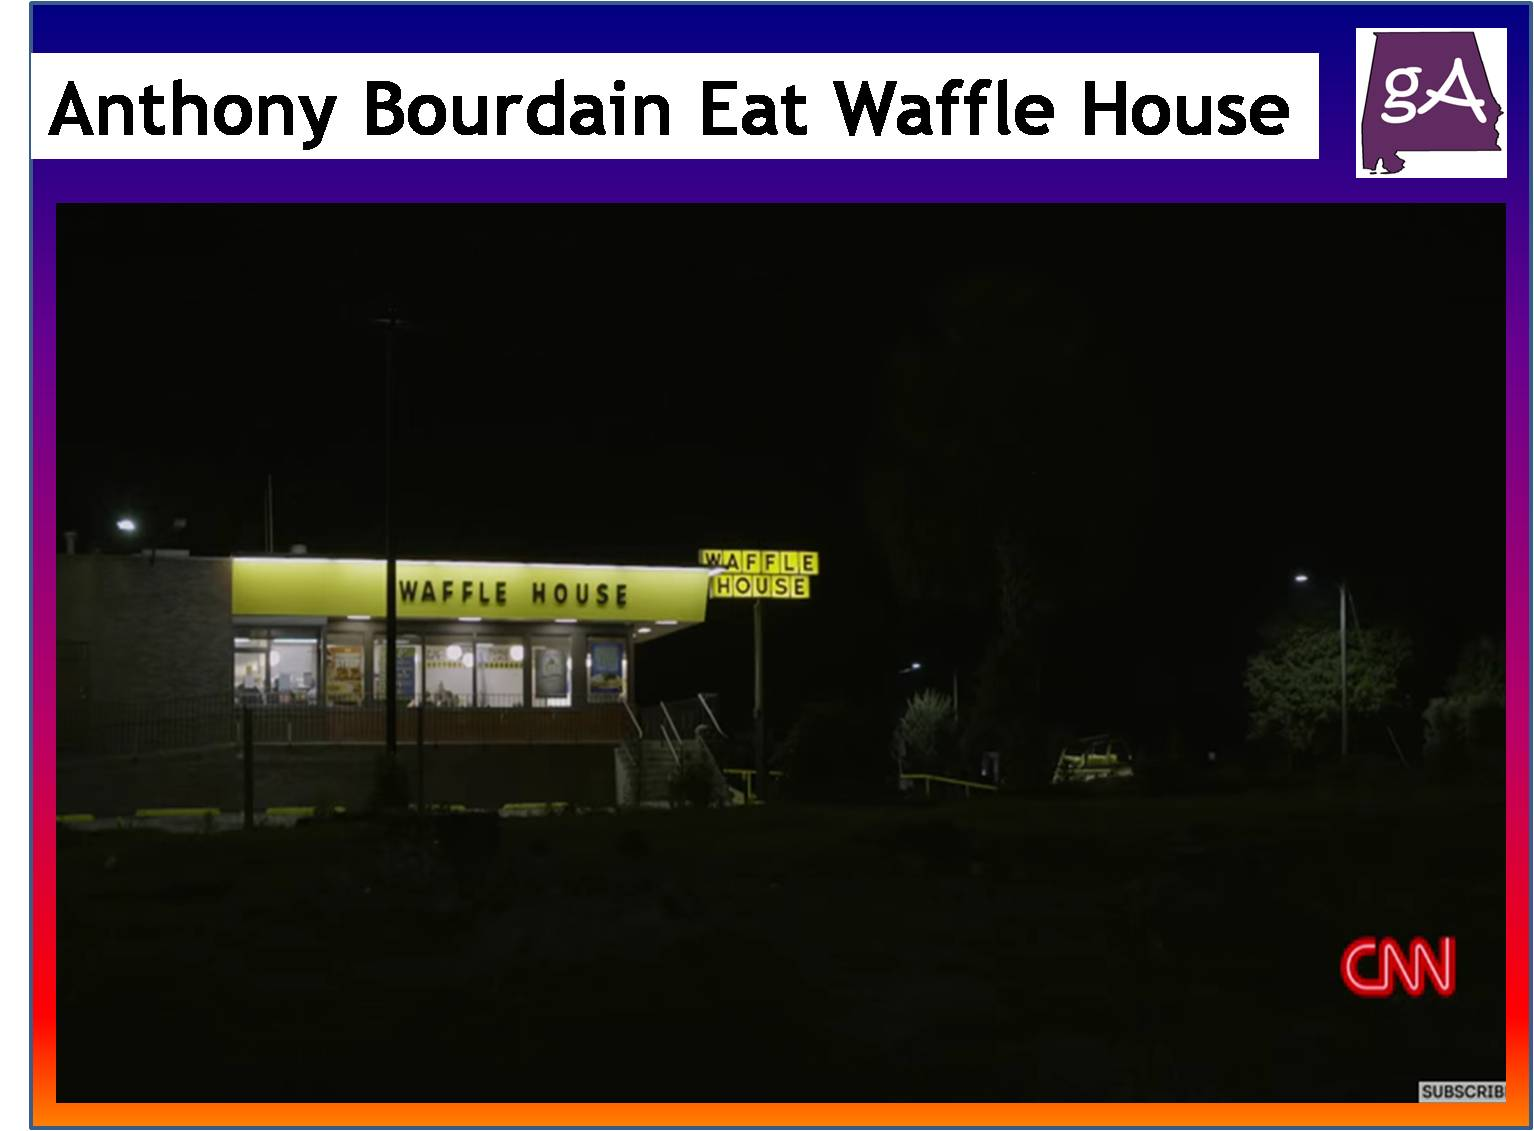 anthony bourdain essay contest house